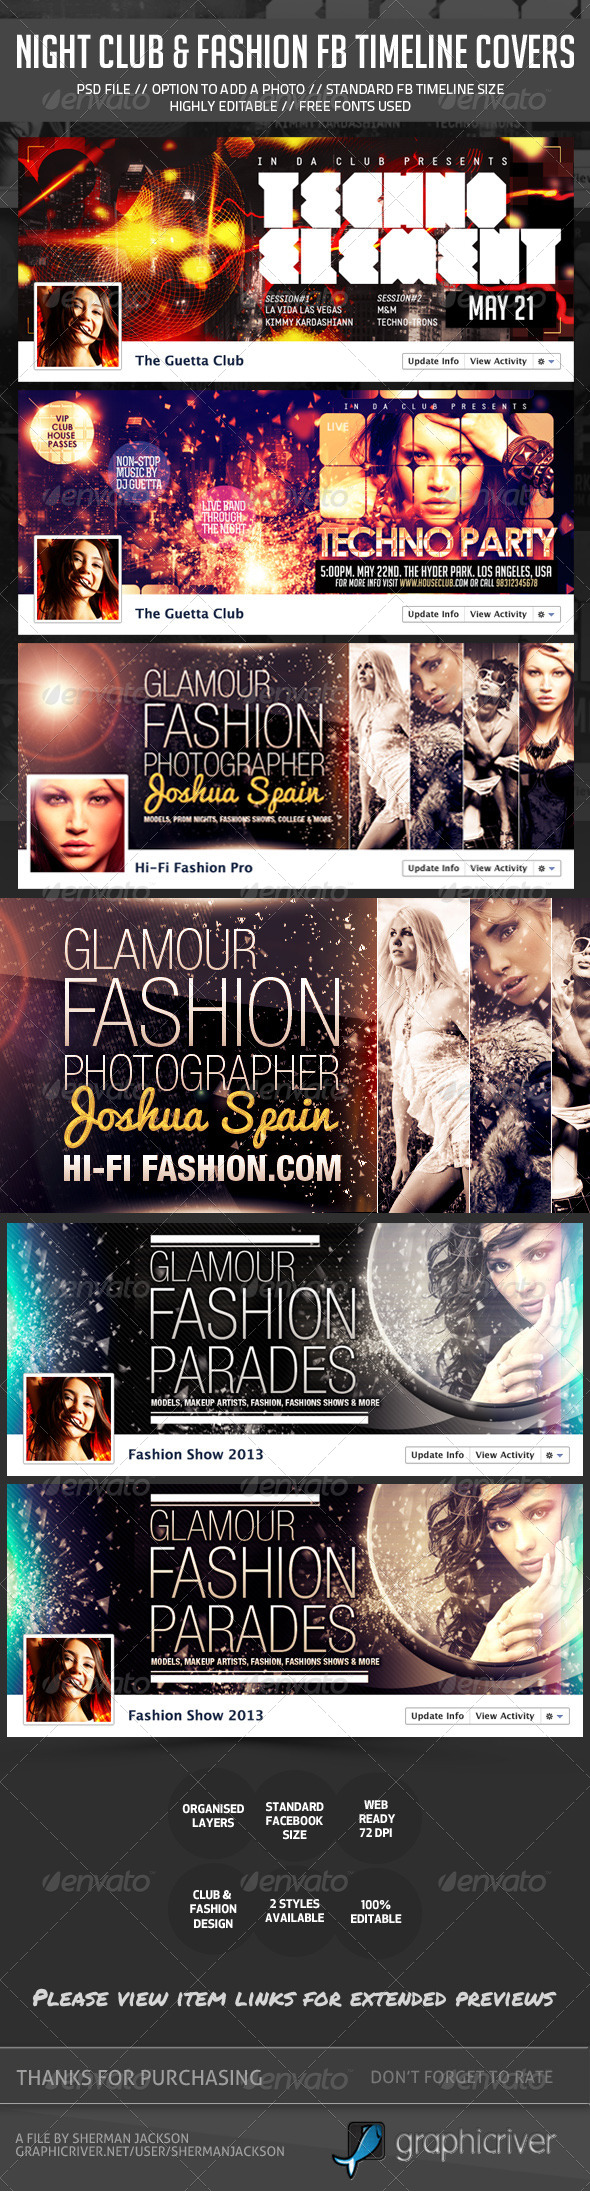 GraphicRiver Night Club Fashion Glamour Fb Timeline Covers Bundle 6256390